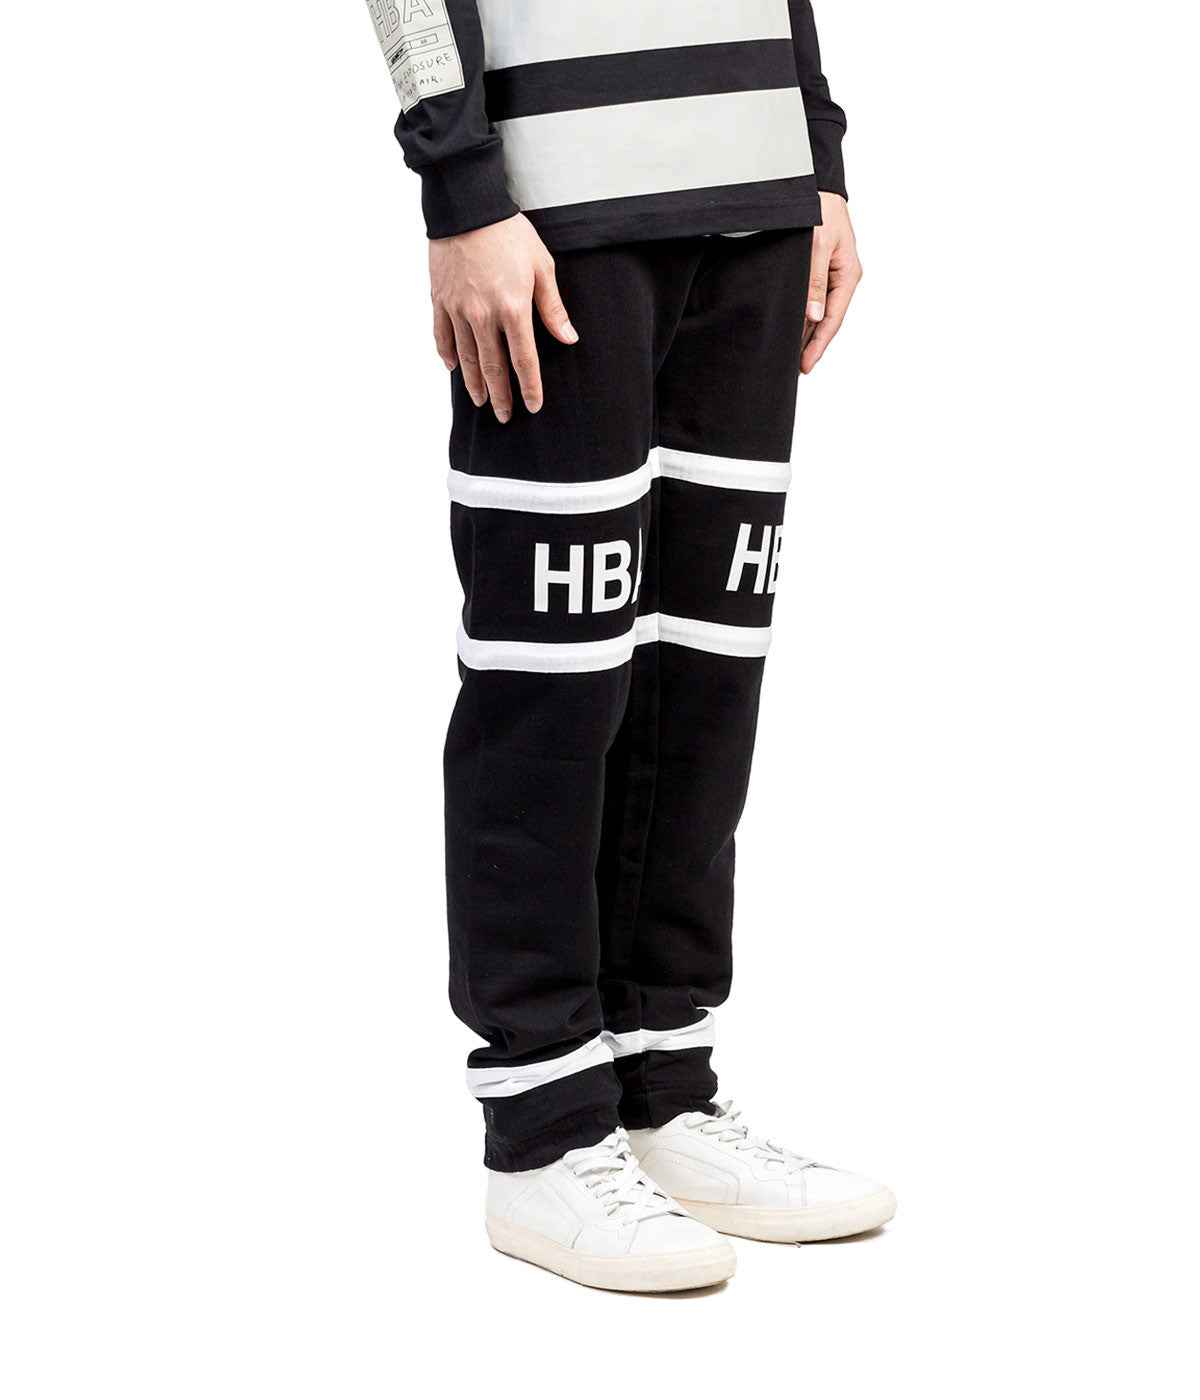 Logo Jockey Sweatpants